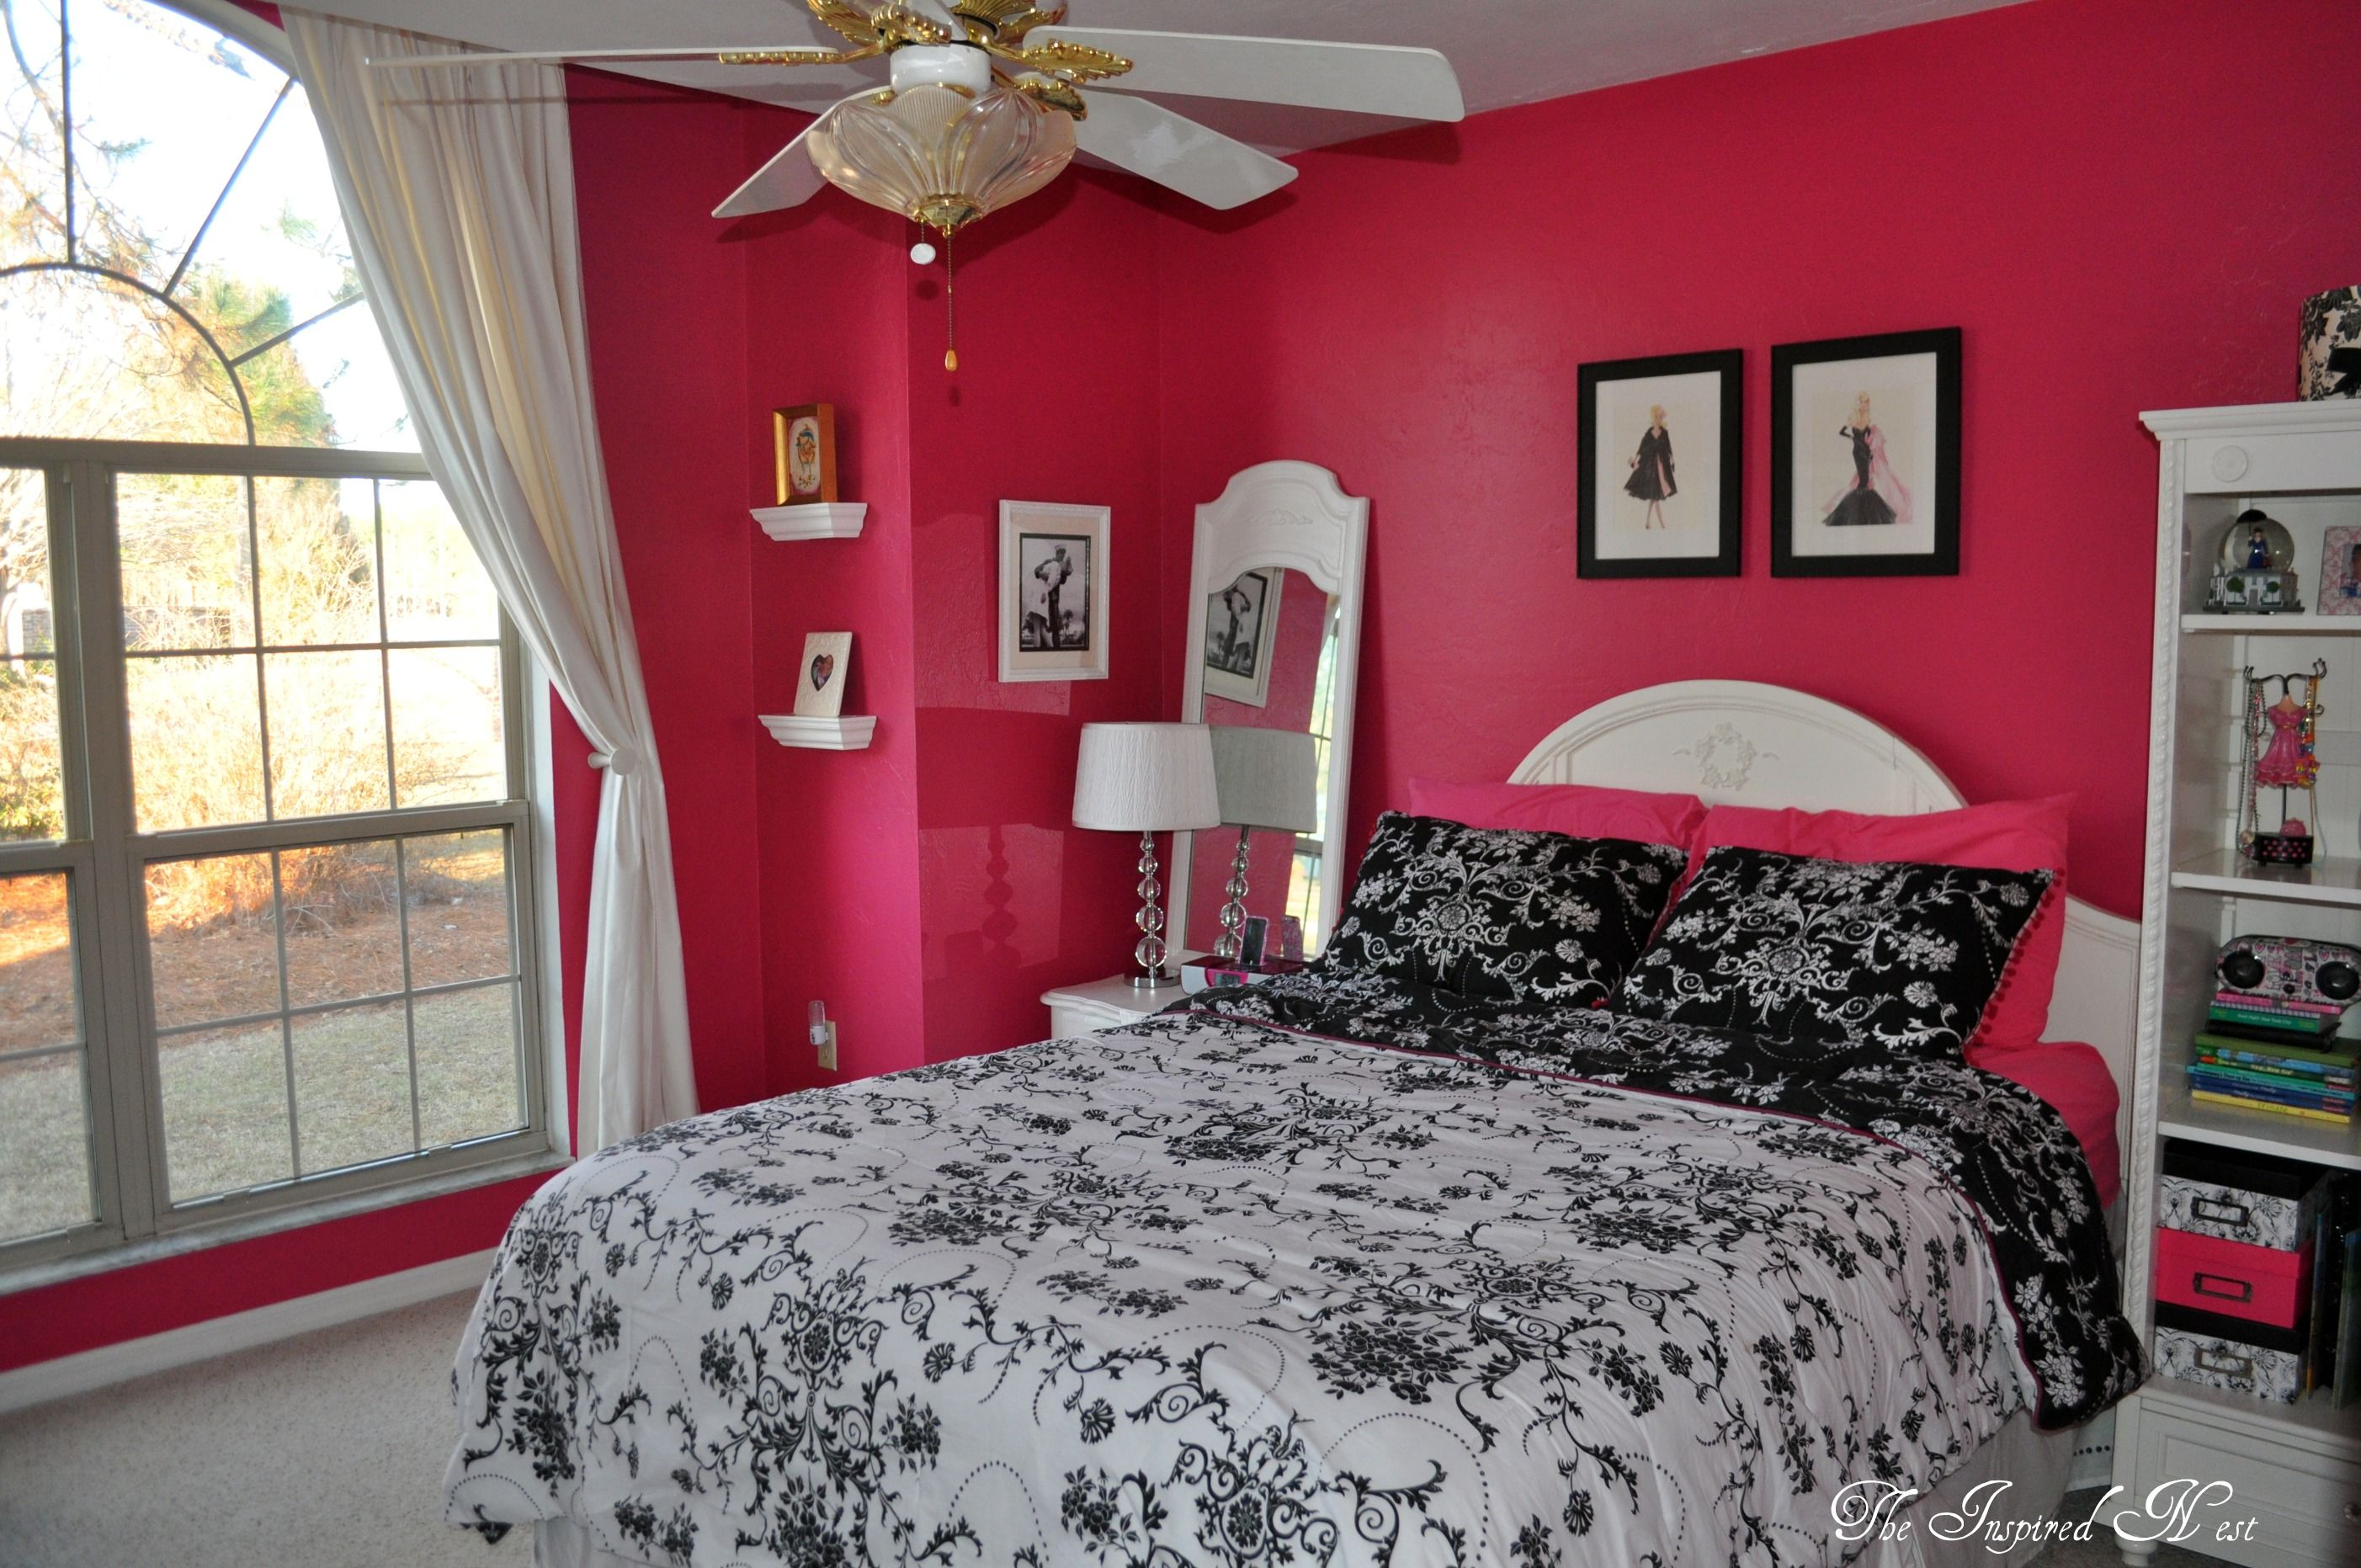 Hot pink walls add a stark contrast for the black and ...